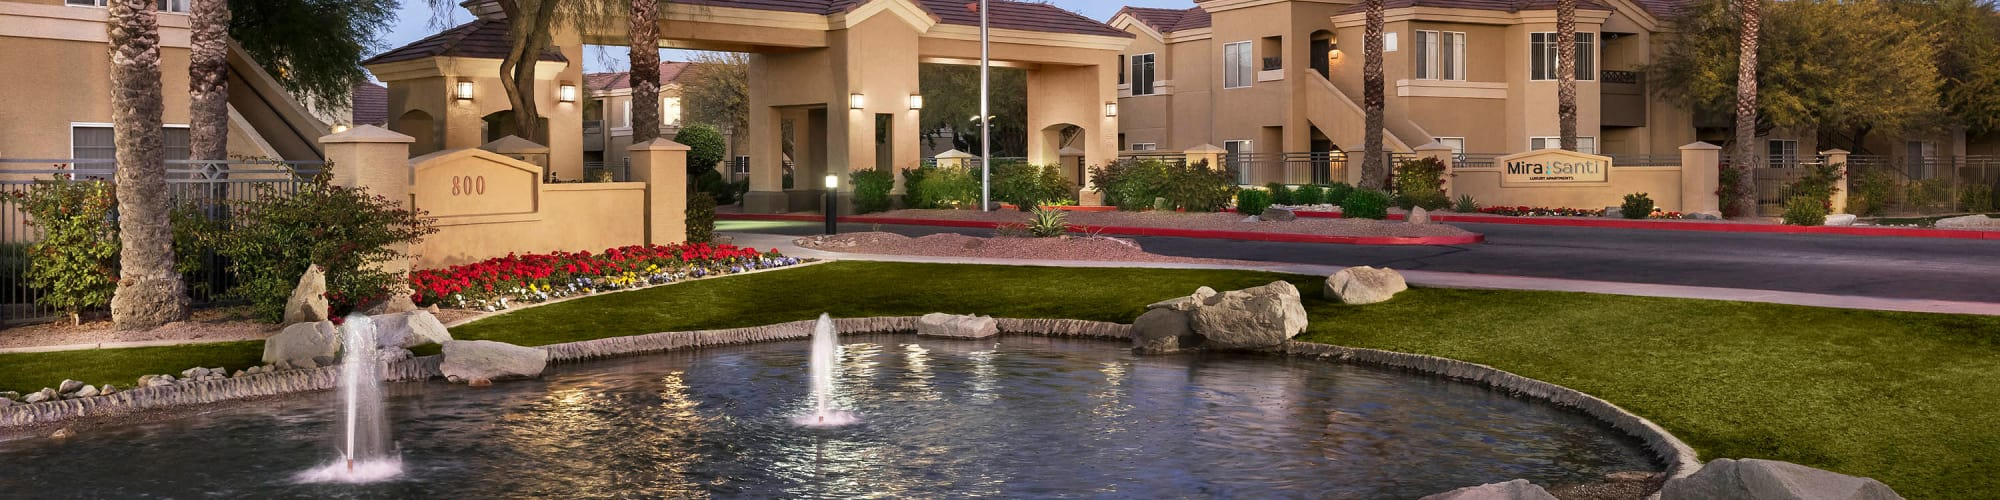 Schedule a tour of Mira Santi in Chandler, Arizona